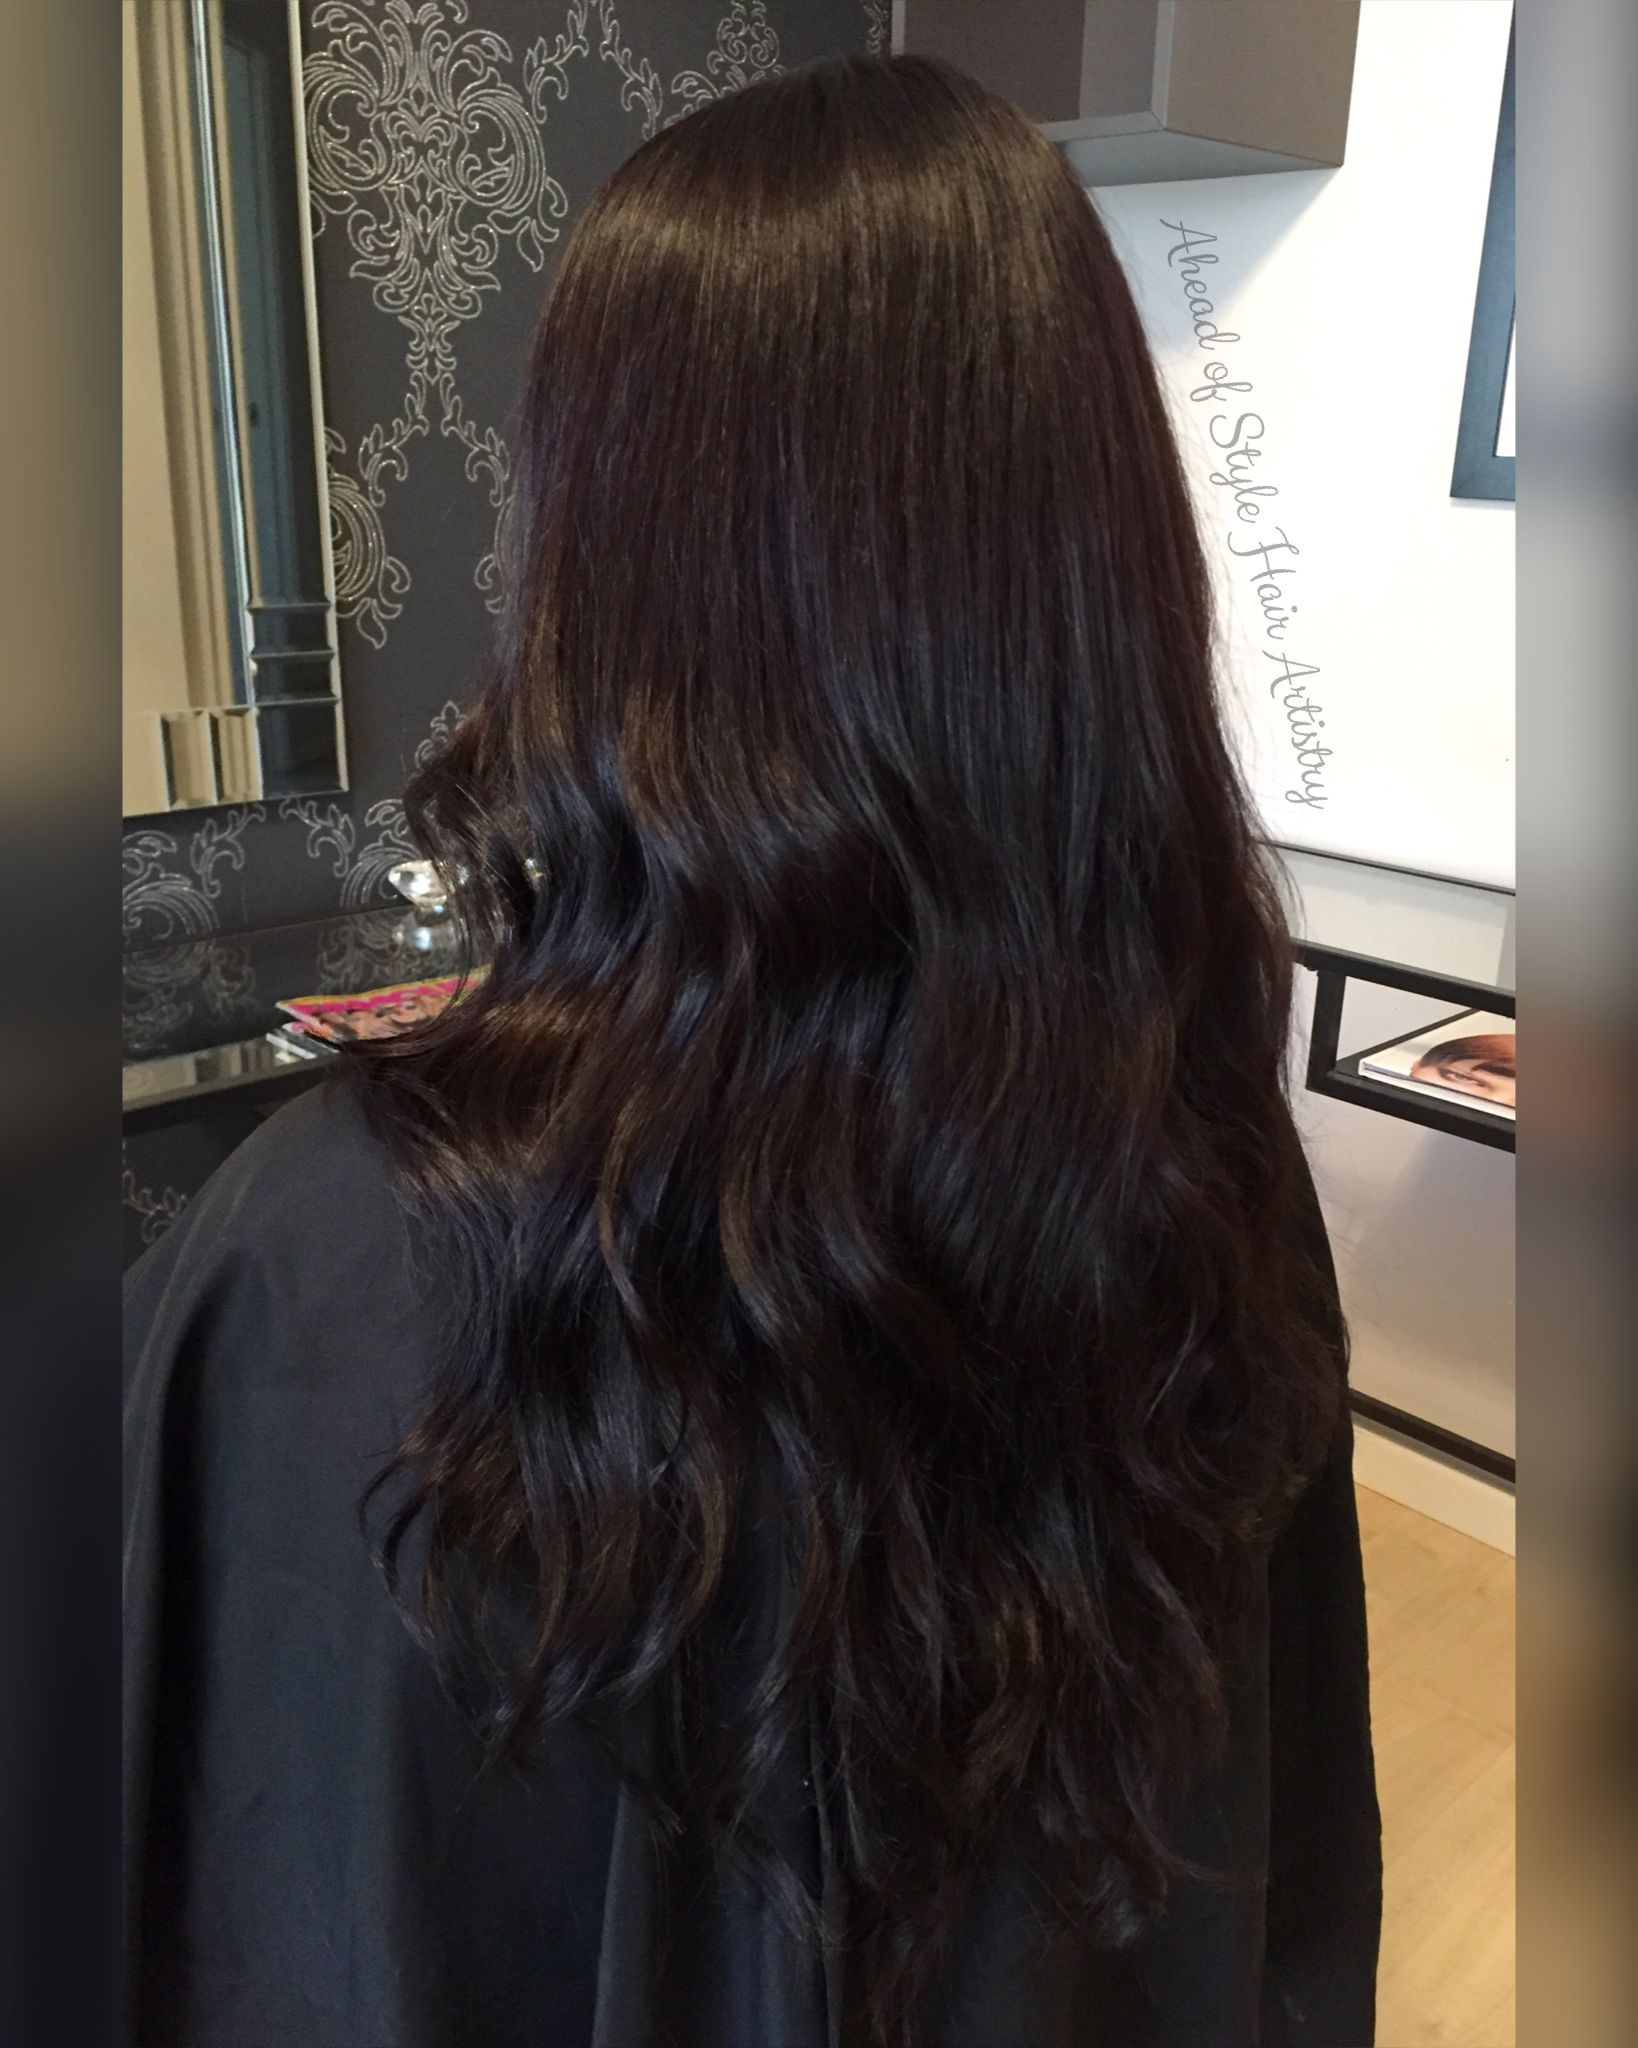 Hair Goals Amazing Length And Thickness Achieved With Red Carpet